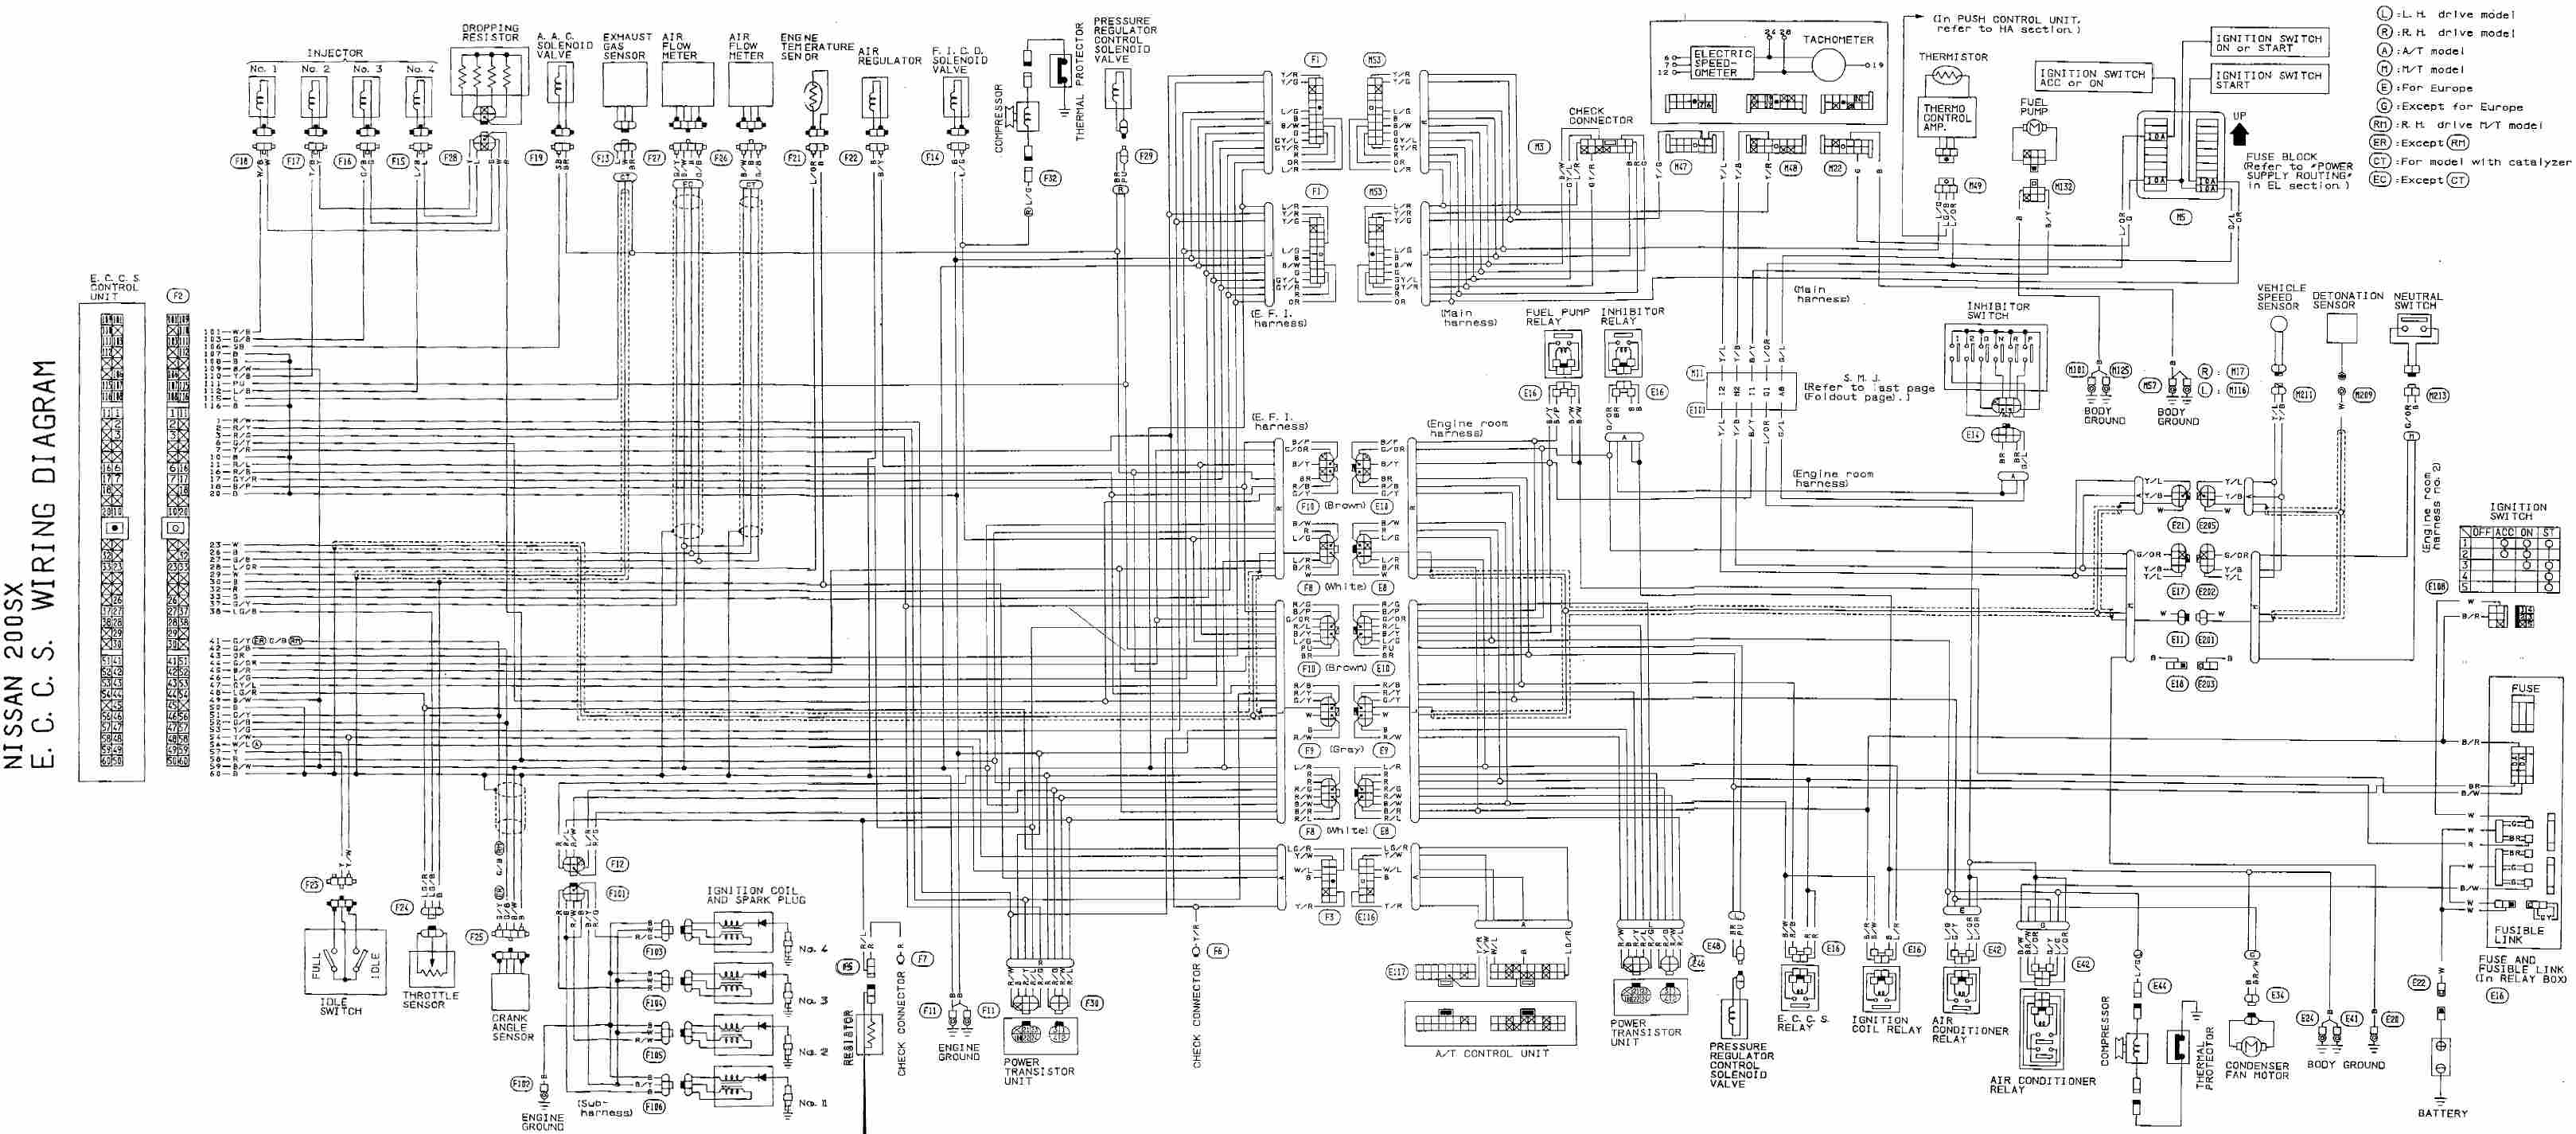 complete eccs wiring diagram of nissan 200x?t\=1508500919 300zx wiring diagram 300zx engine wiring diagram \u2022 wiring diagrams nissan 240sx wiring diagram at readyjetset.co